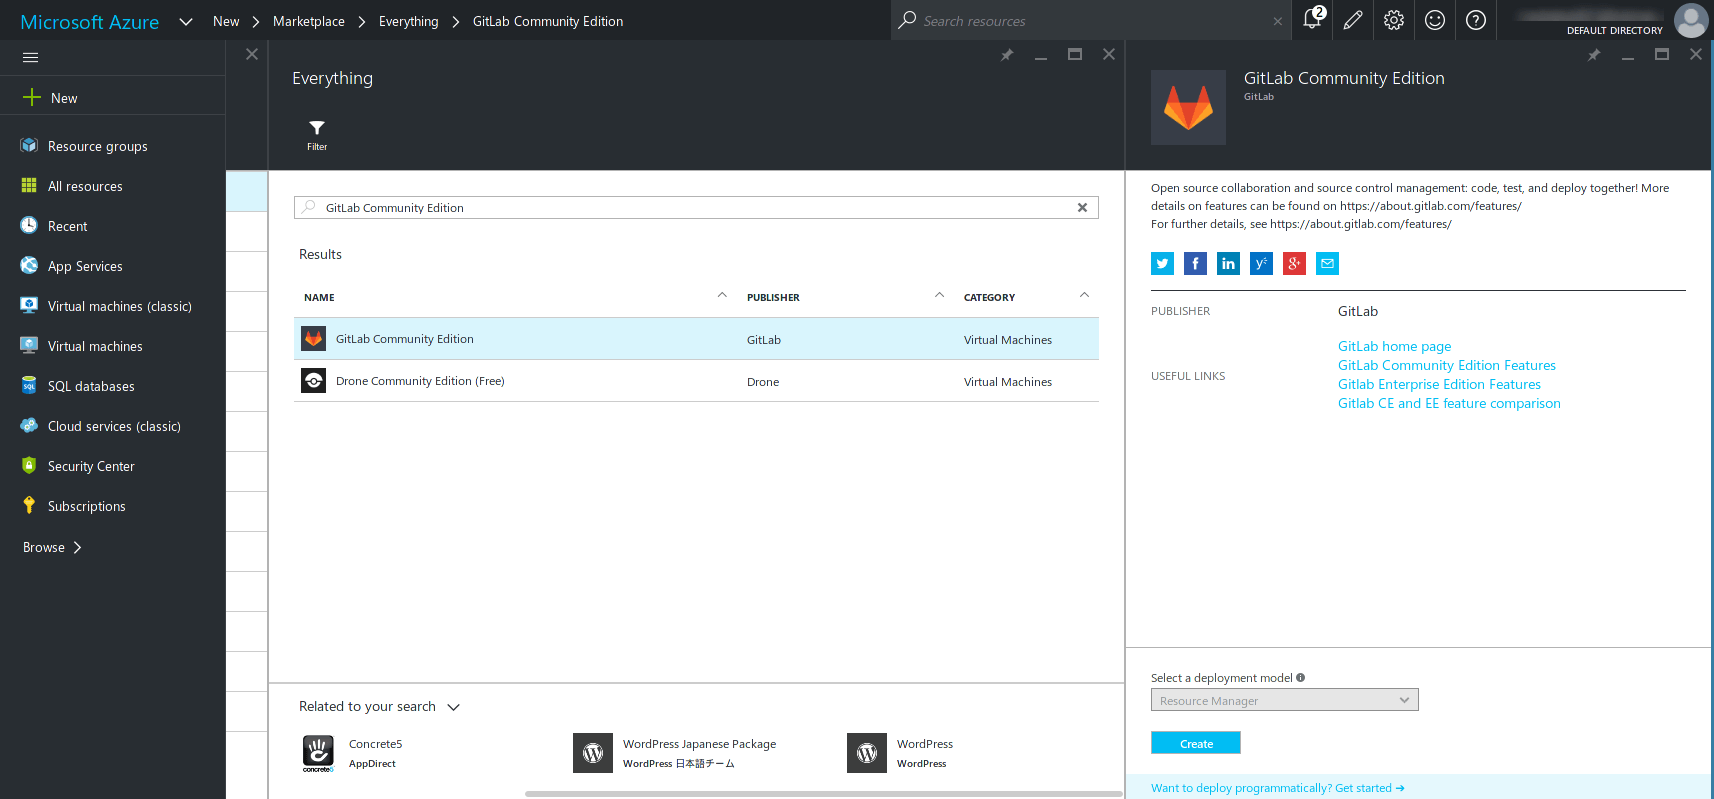 Search for GitLab on Azure Marketplace